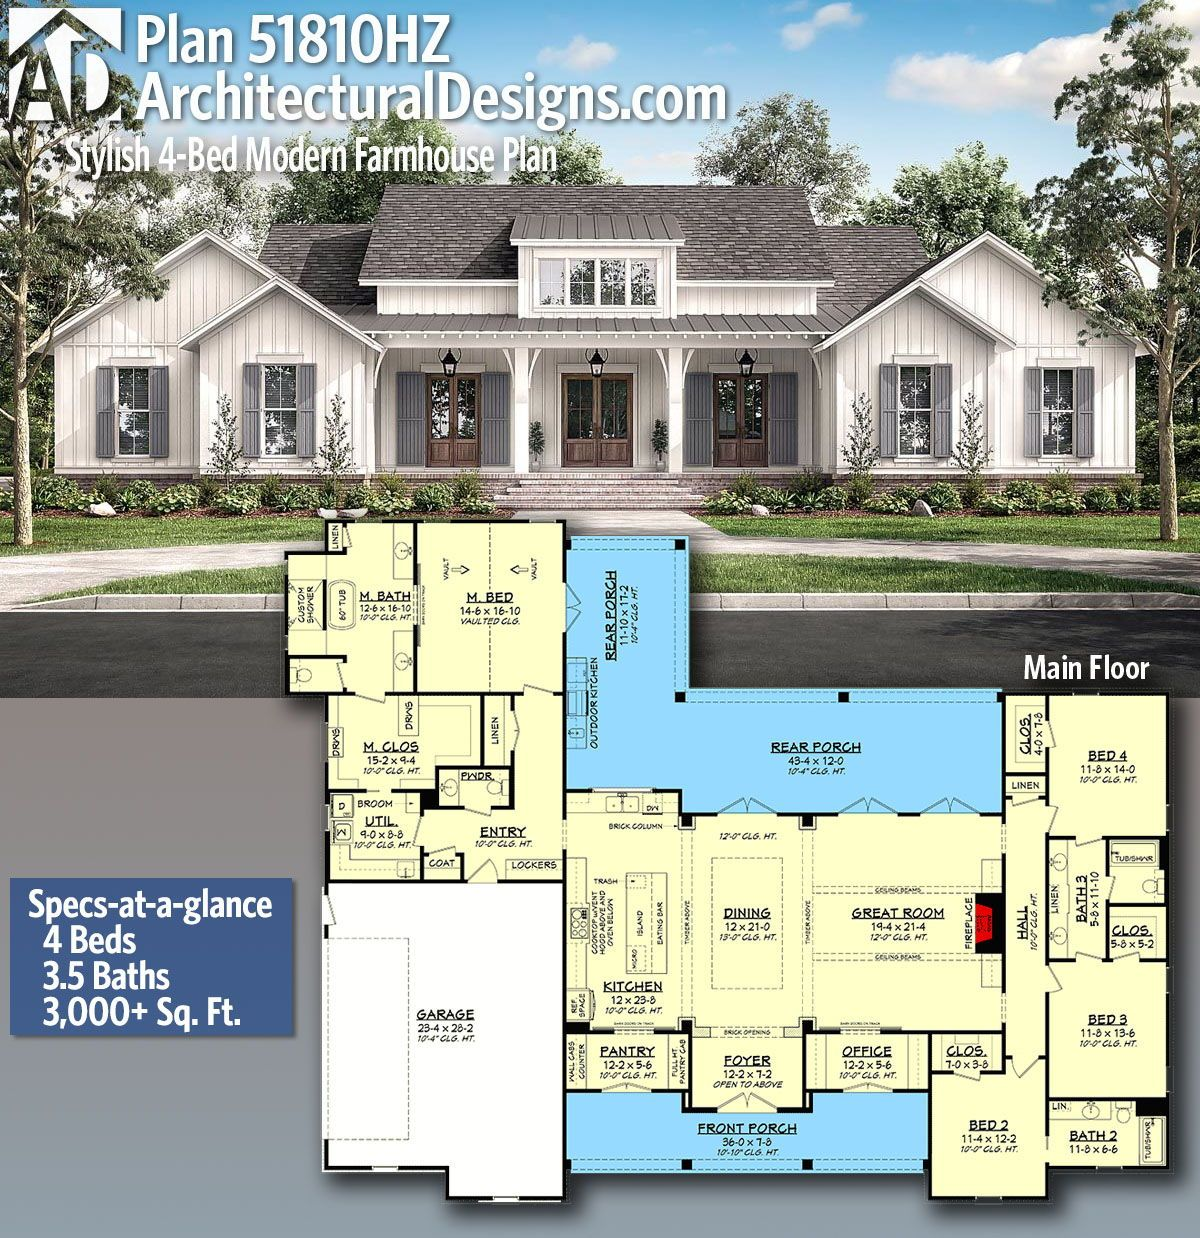 Plan 51810hz Stylish 4 Bed Modern Farmhouse Plan With Vaulted Master Suite Modern Farmhouse Plans House Plans Farmhouse Farmhouse Plans